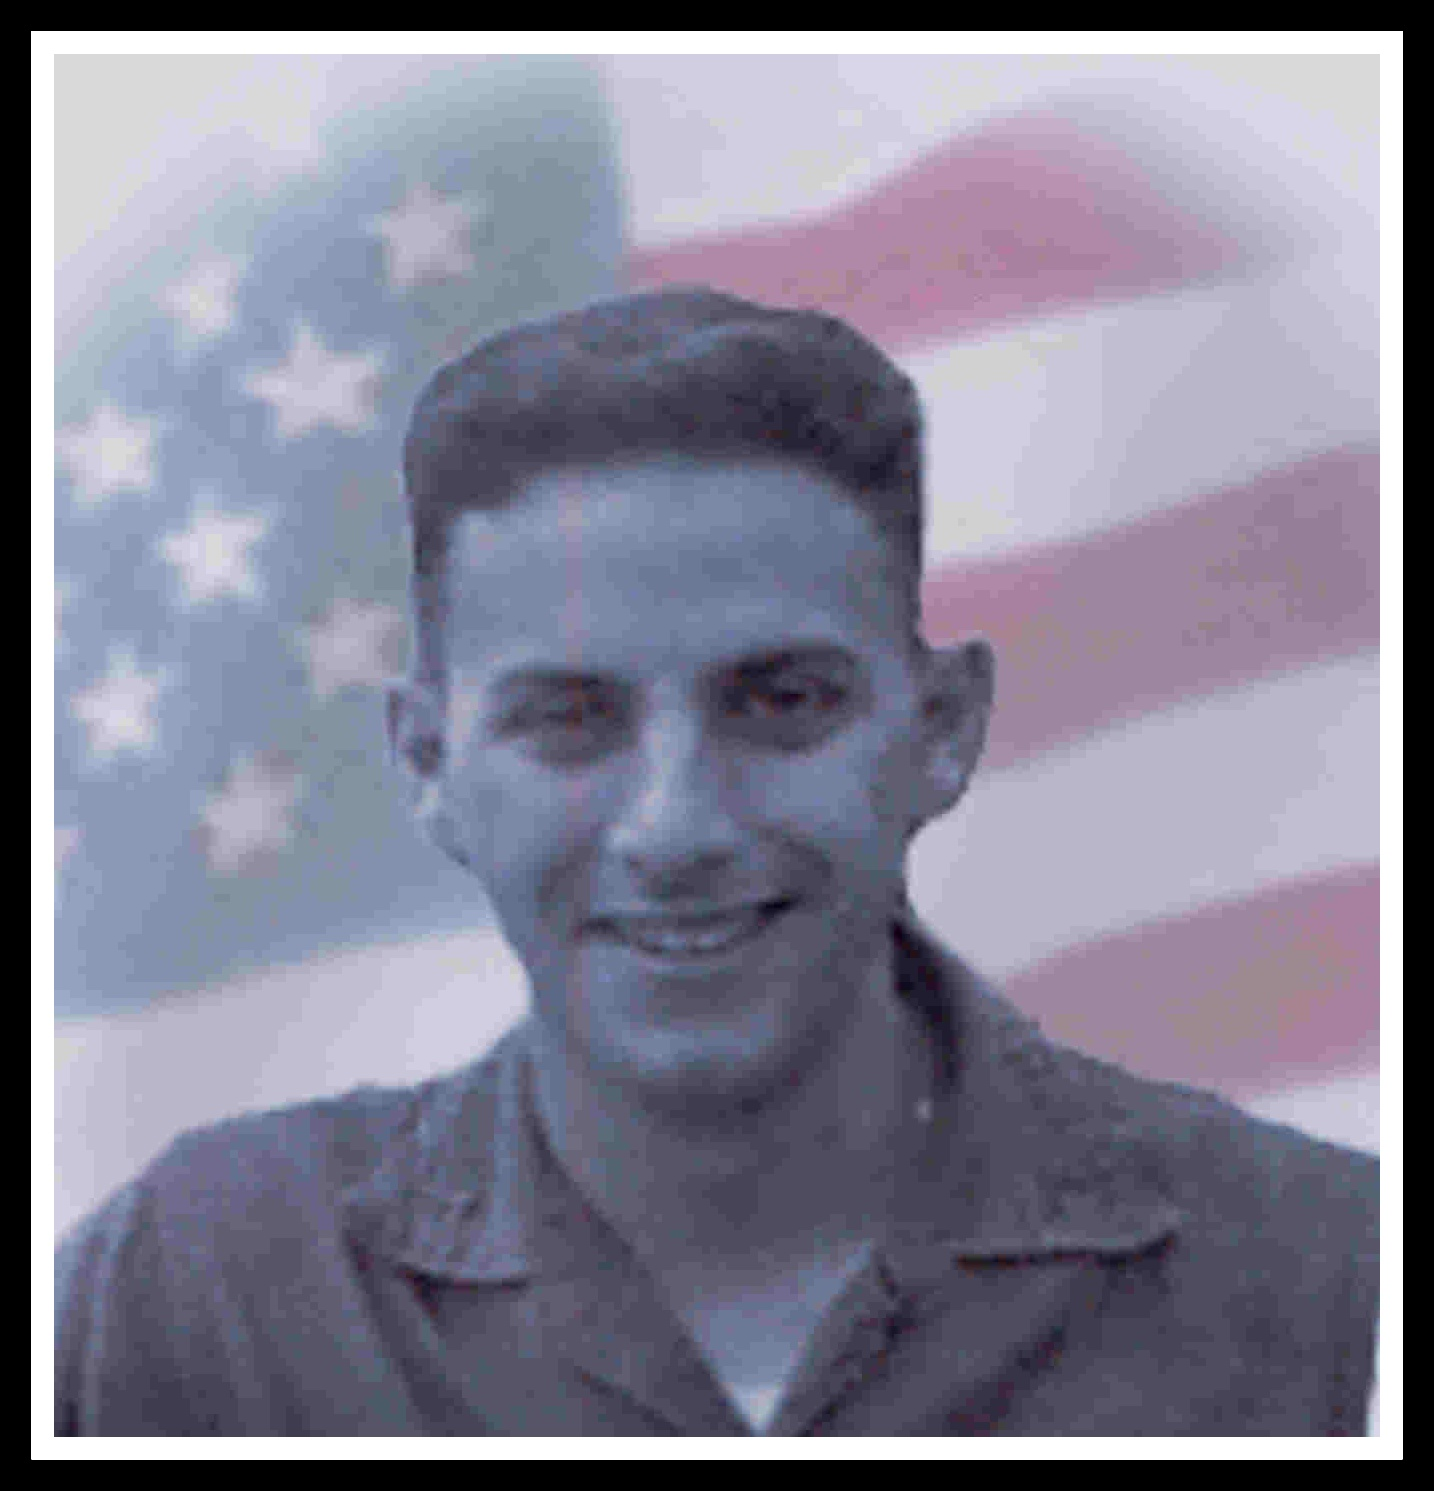 Jerry Donatiello of Belleville, KIA, Vietnam.